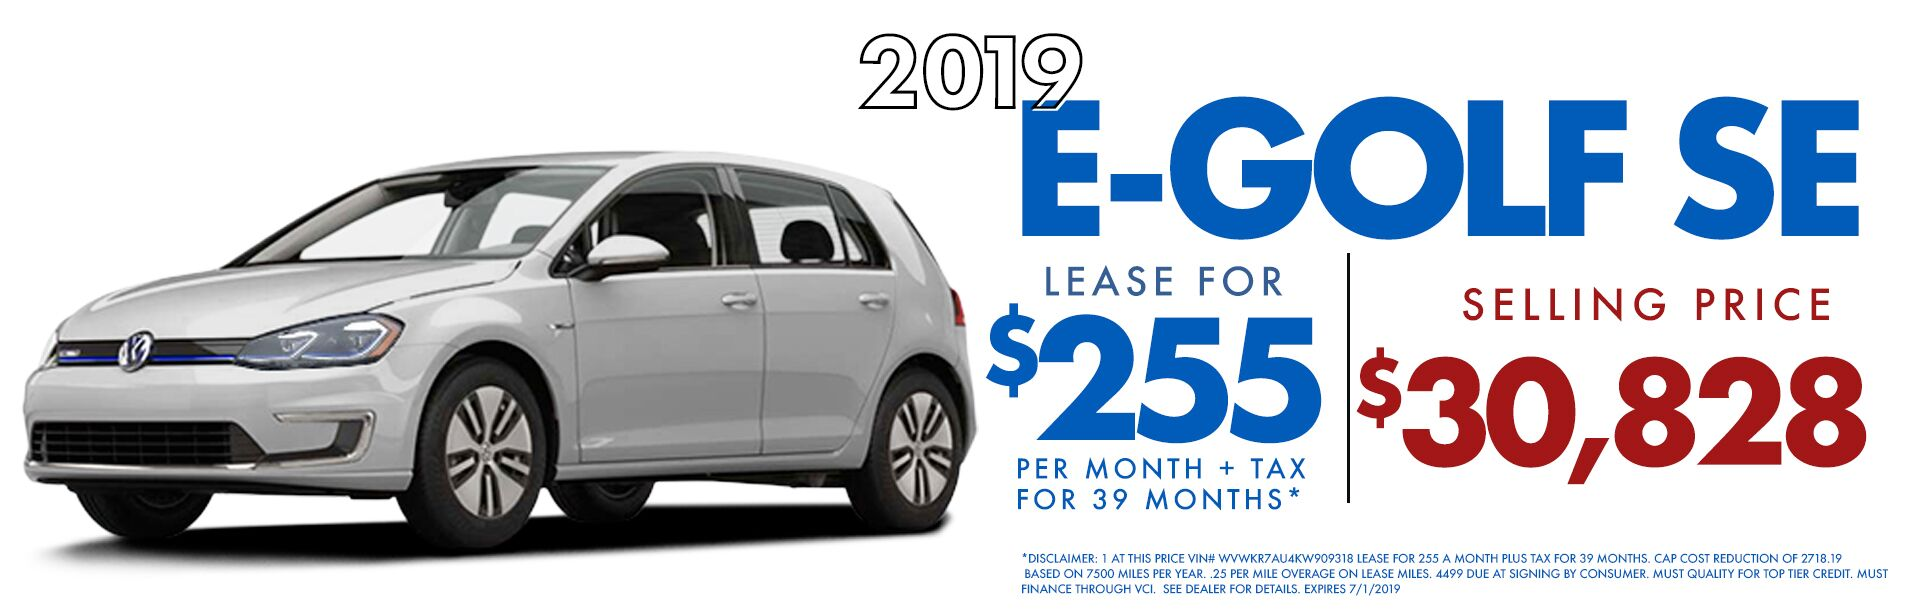 E Golf Lease Special June